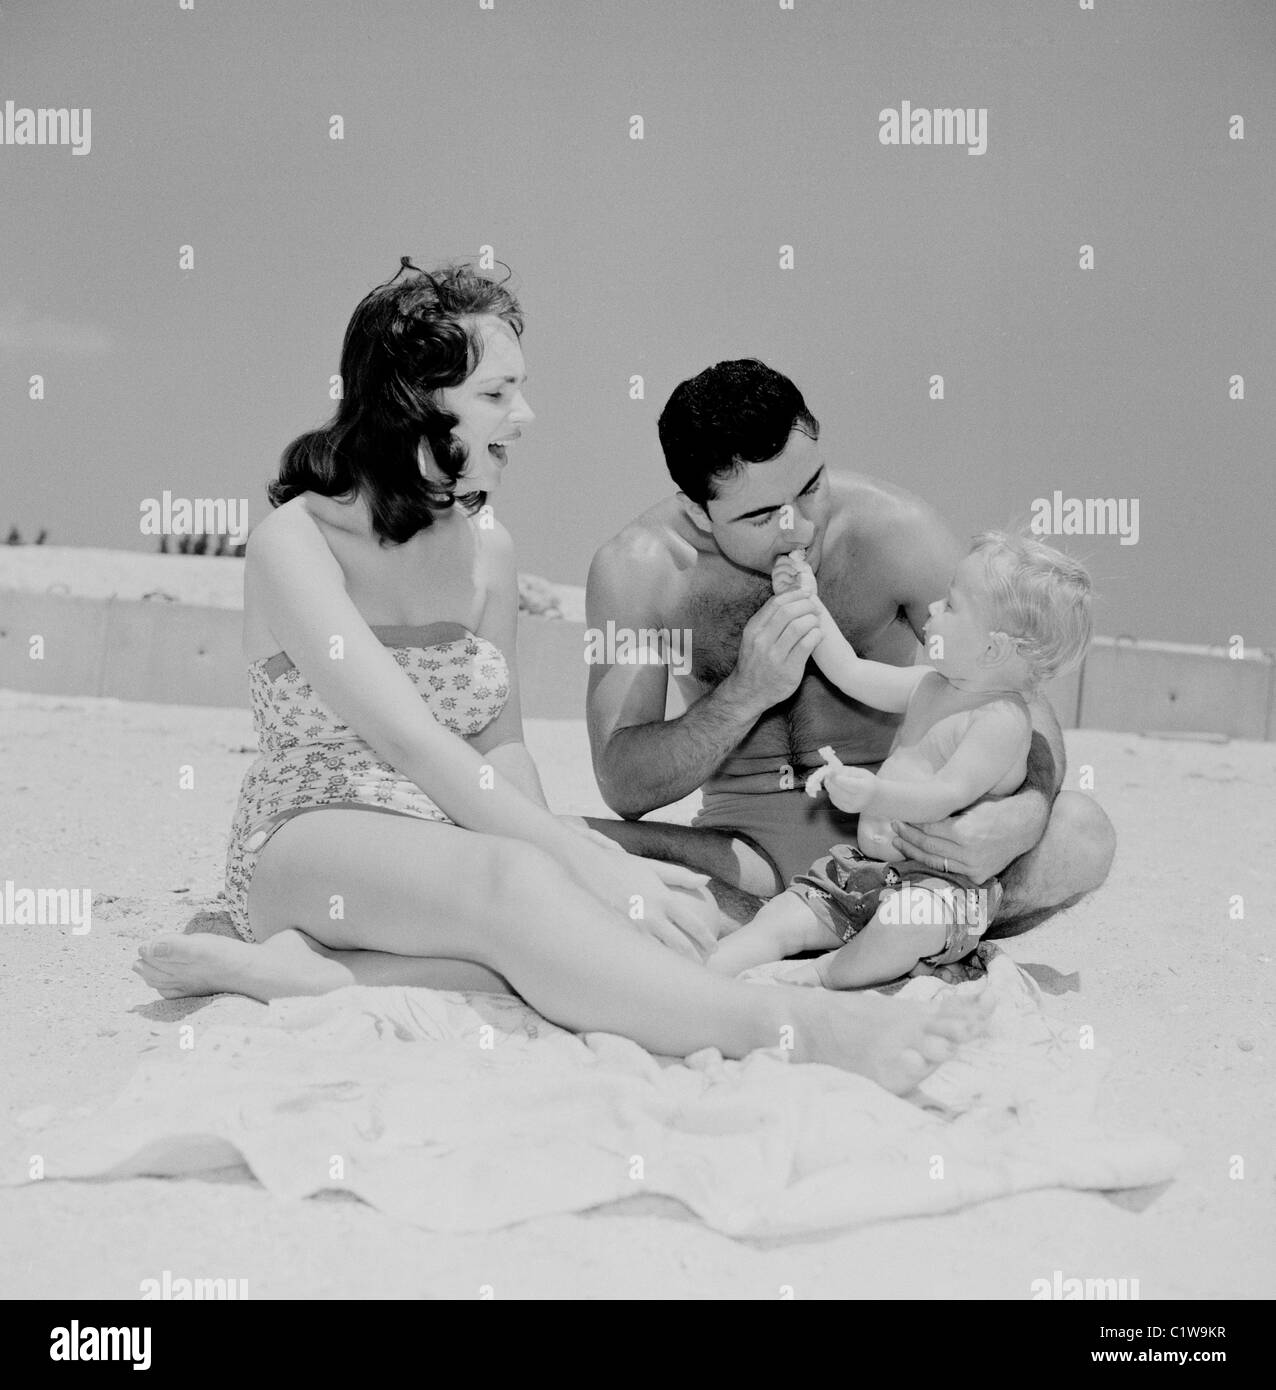 Family with baby boy on beach - Stock Image